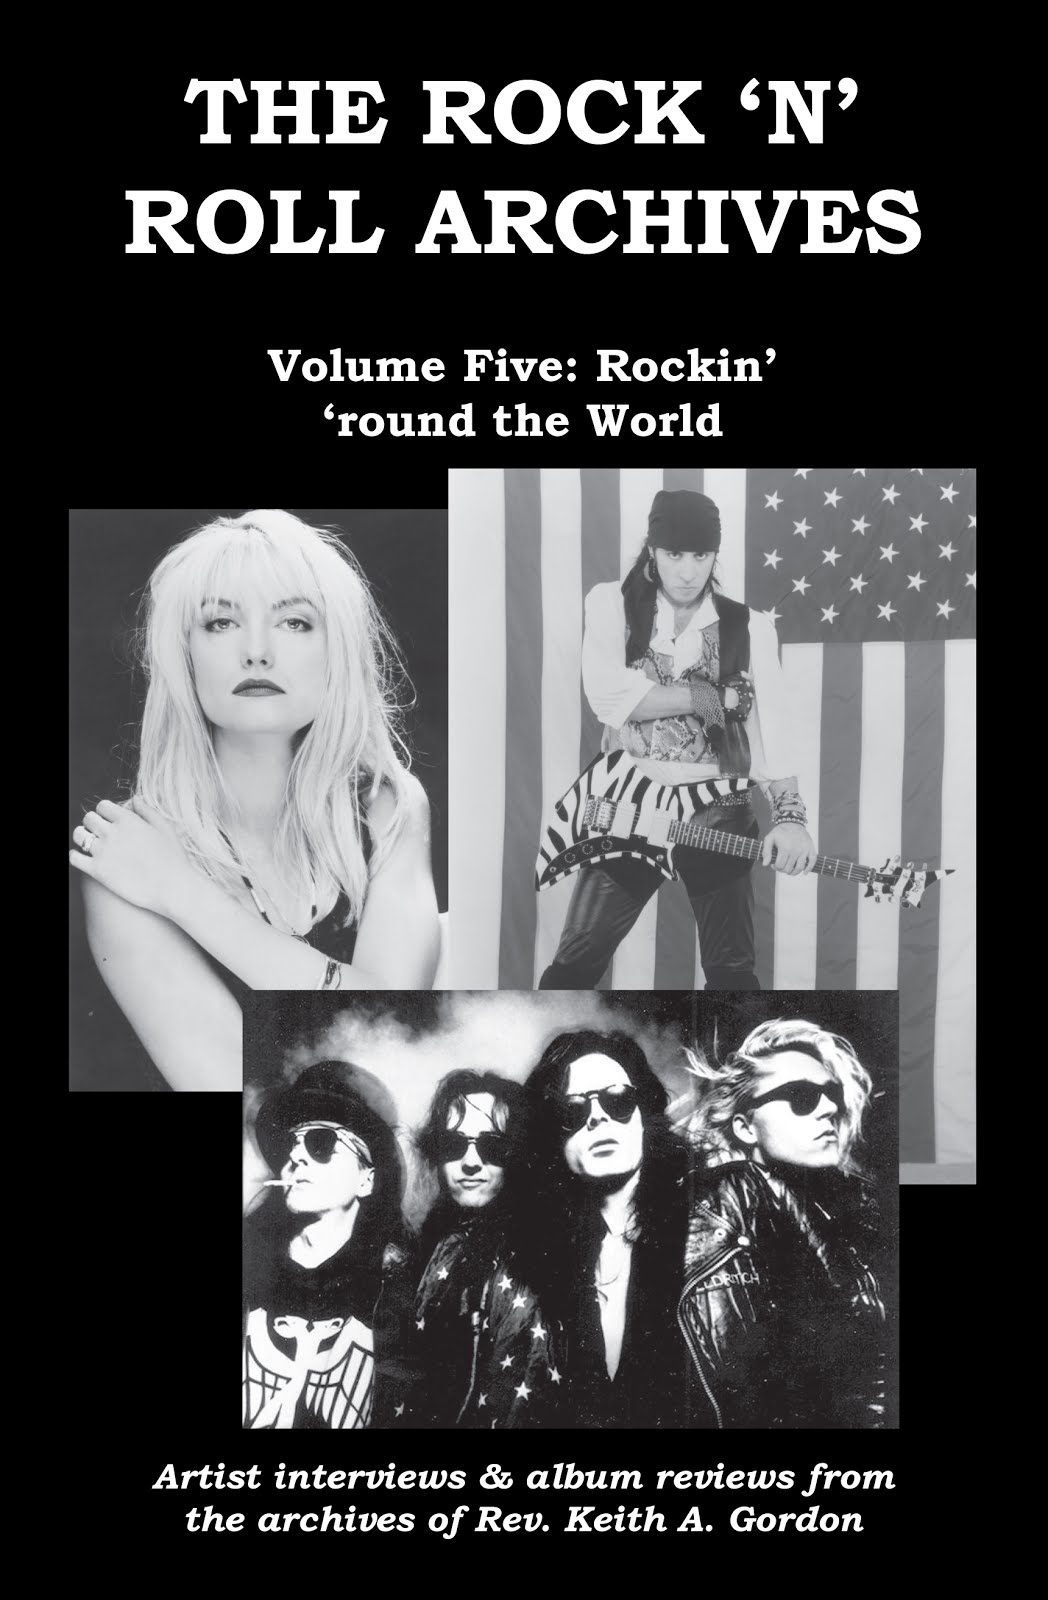 The Rock 'n' Roll Archives: Rockin' 'round the World